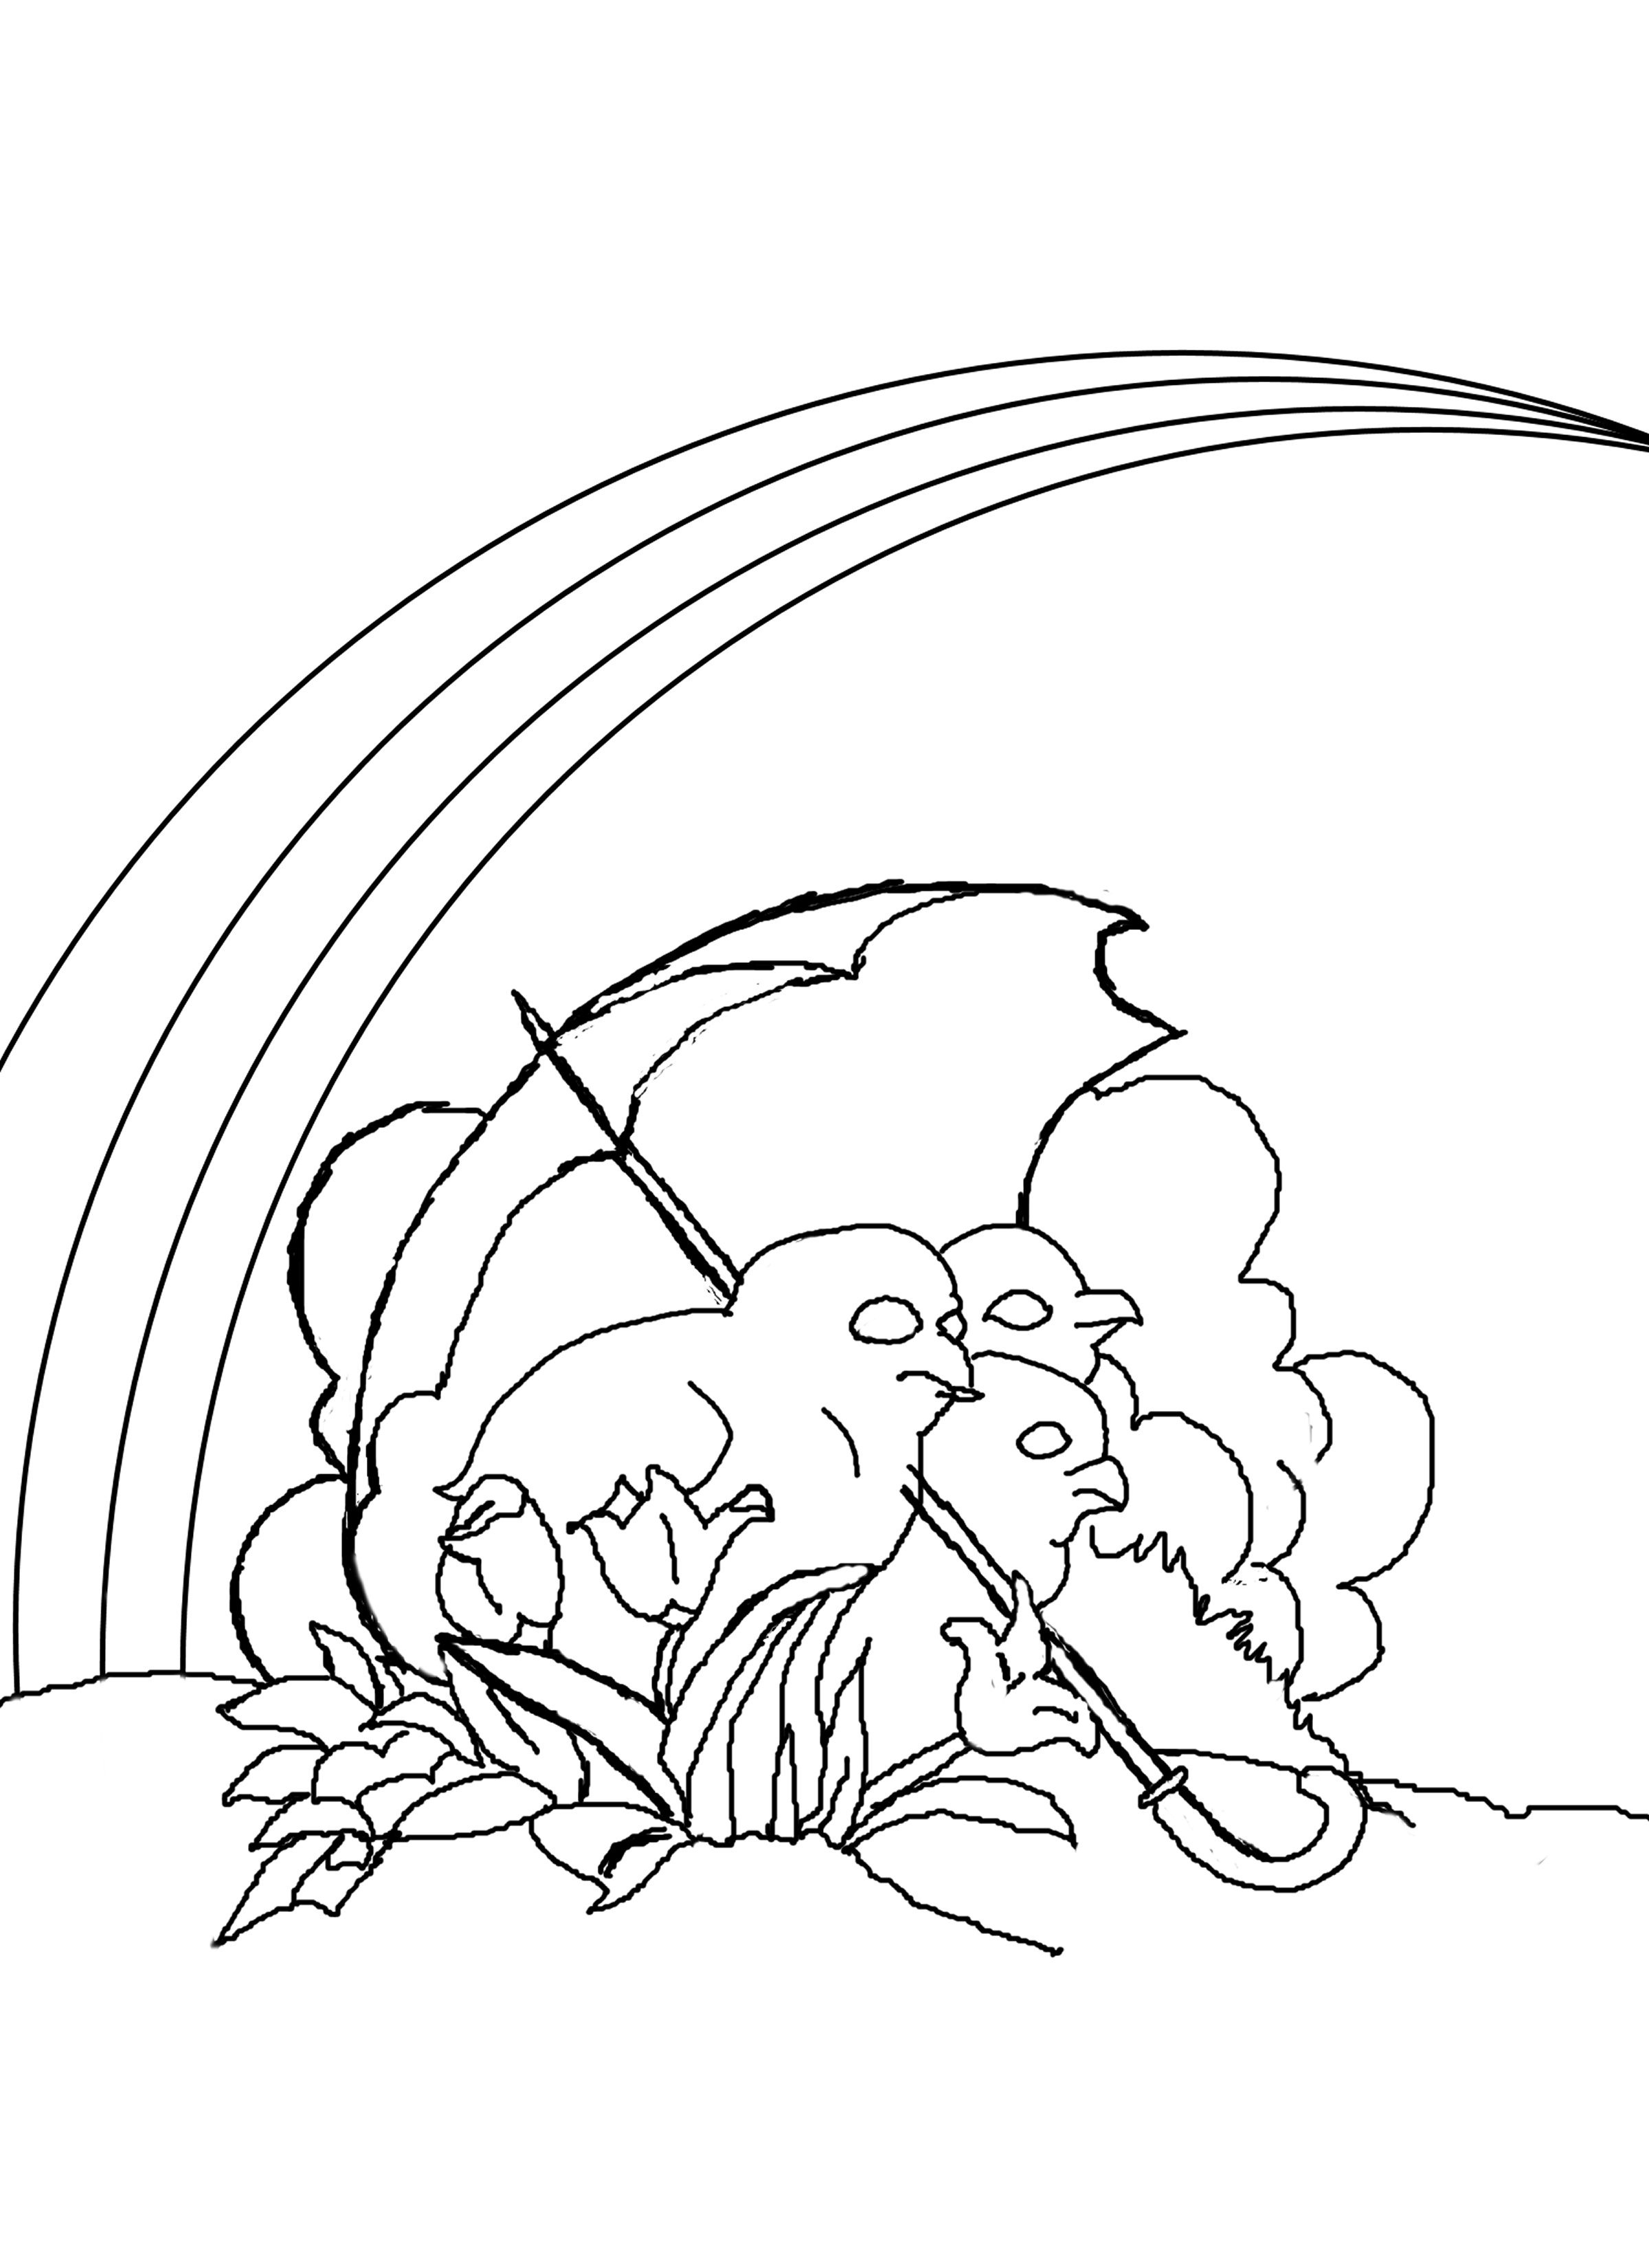 rainbow coloring page rainbow coloring pages getcoloringpagescom coloring page rainbow